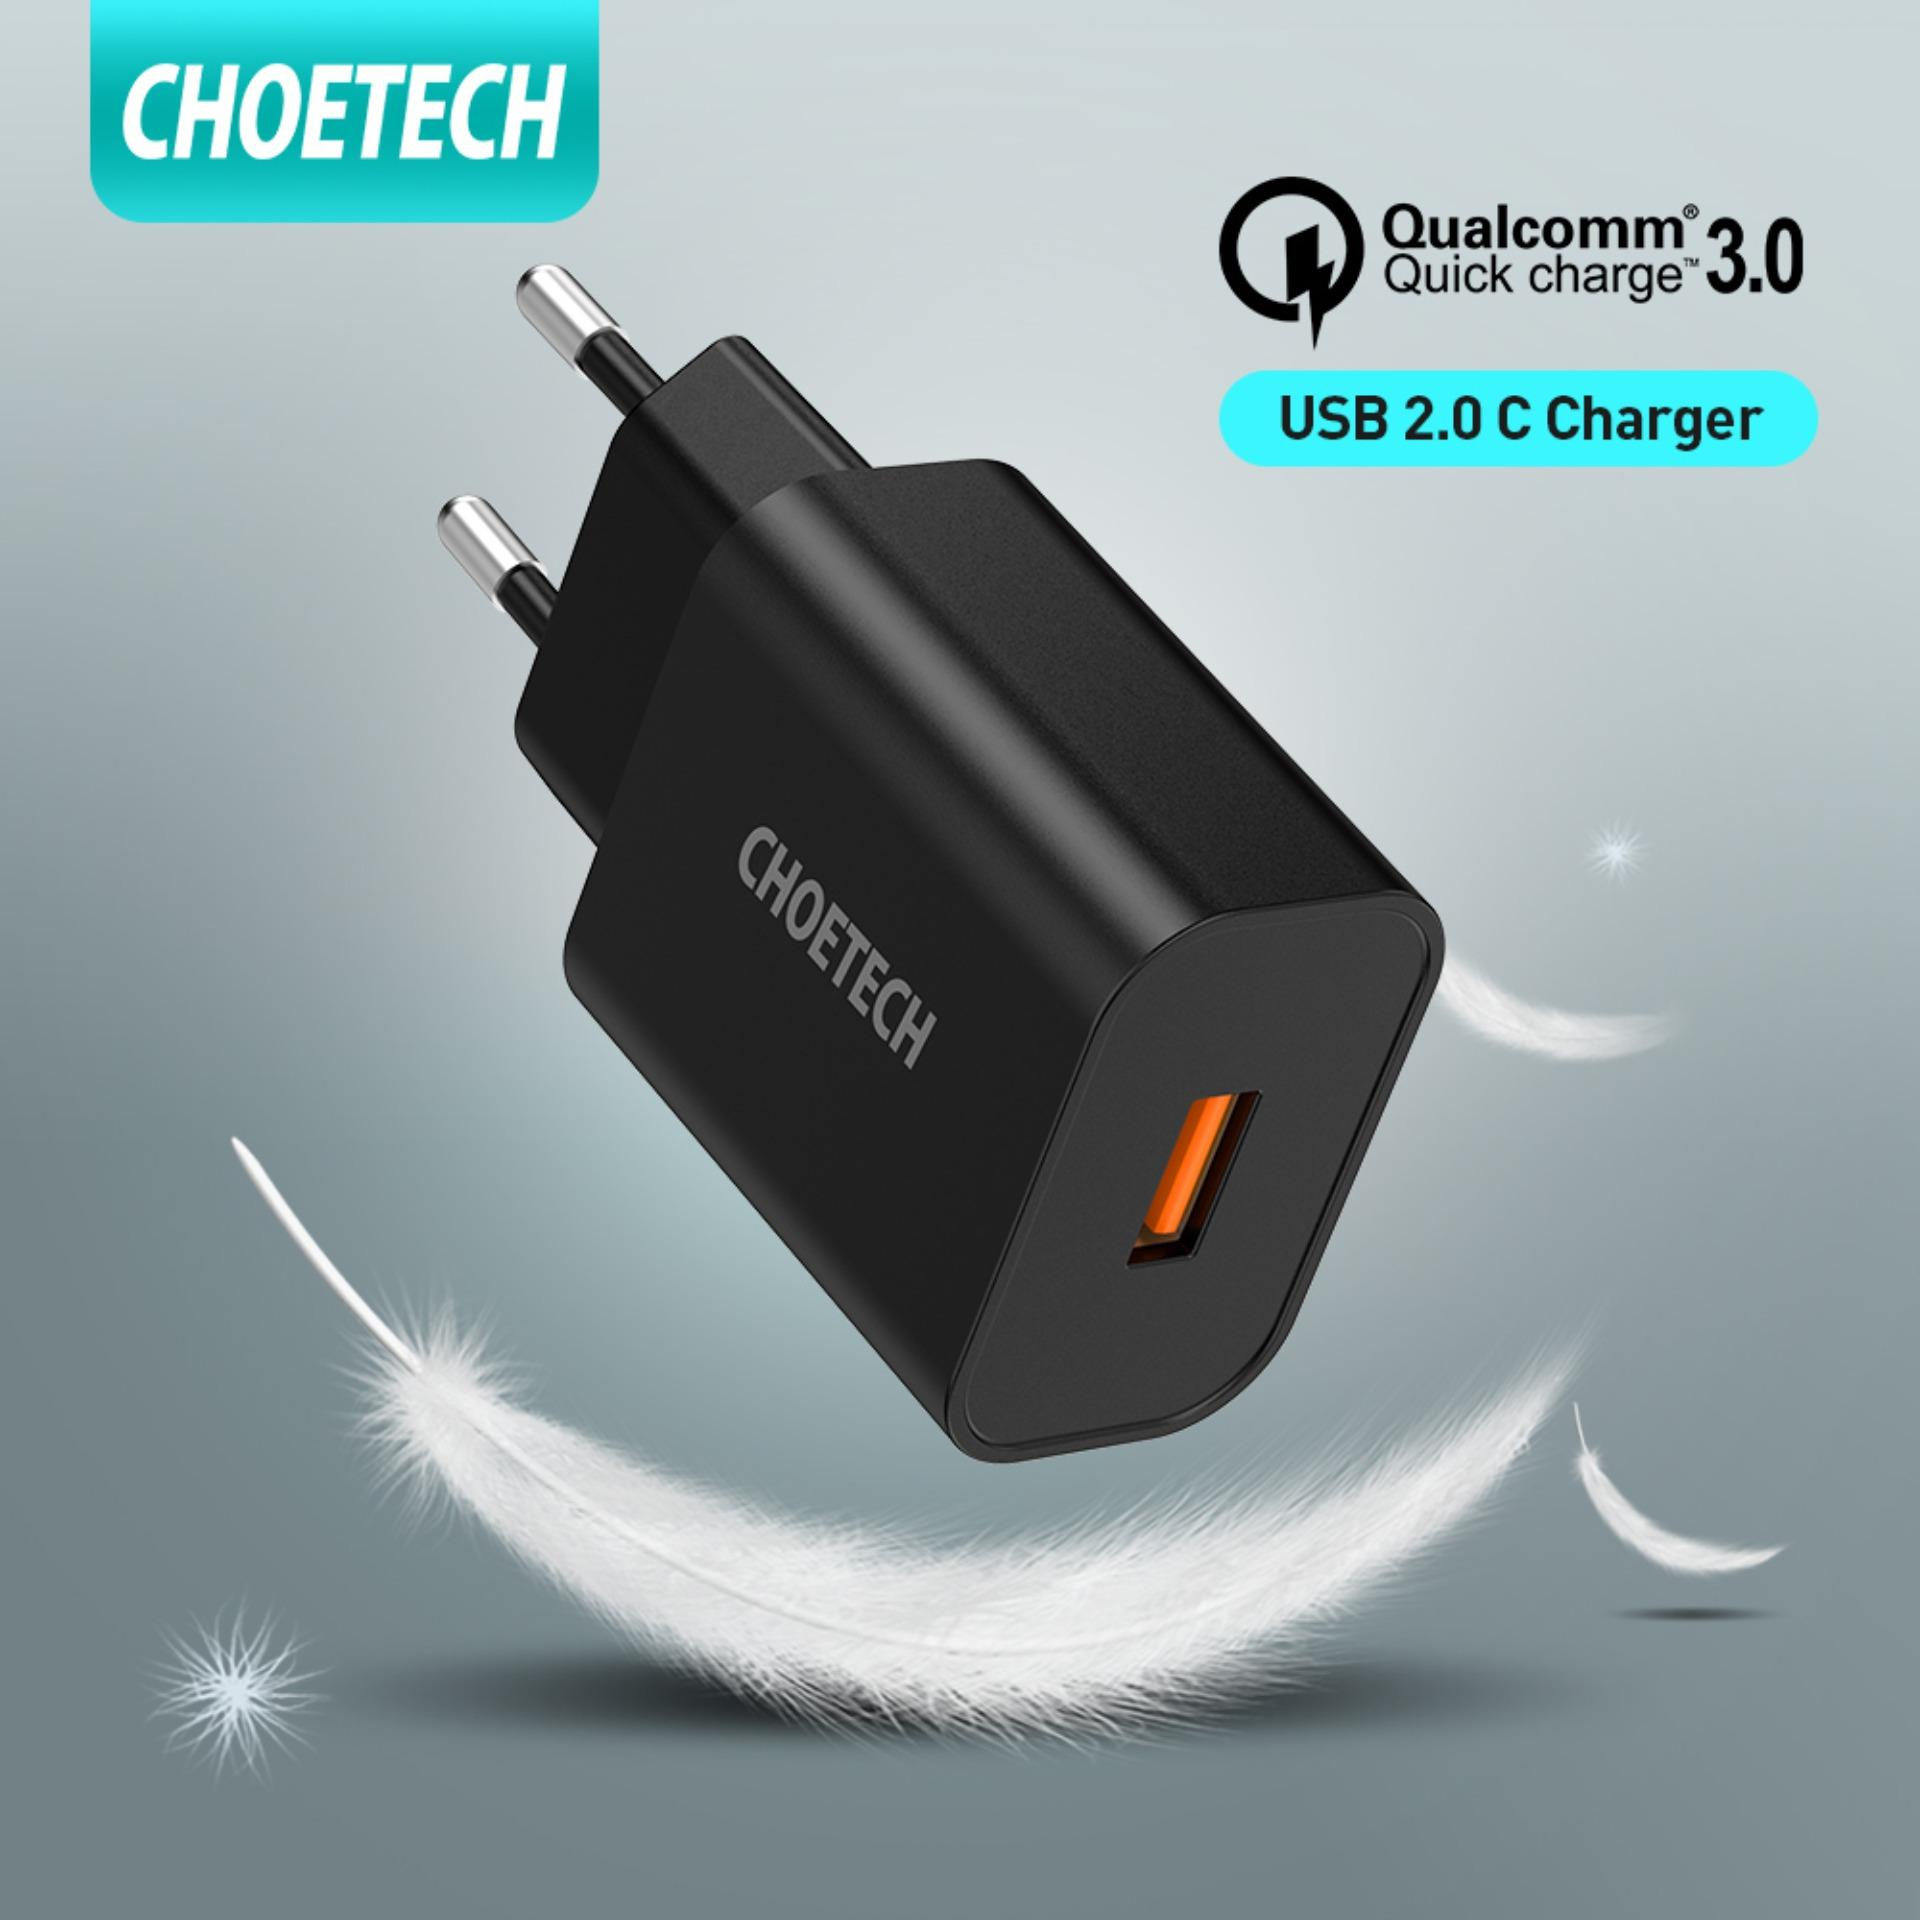 Giá CHOETECH điện thoại Wall ChargerQuick Charge 3.0 Wall Charger, 18W USB C Wall Charger Fast Charging for Samsung Galaxy Note 10,S10, Note 9, S9, Note 8, S8, S7 and iPhone, iPad, LG, Sony, HTC, Huawei etc